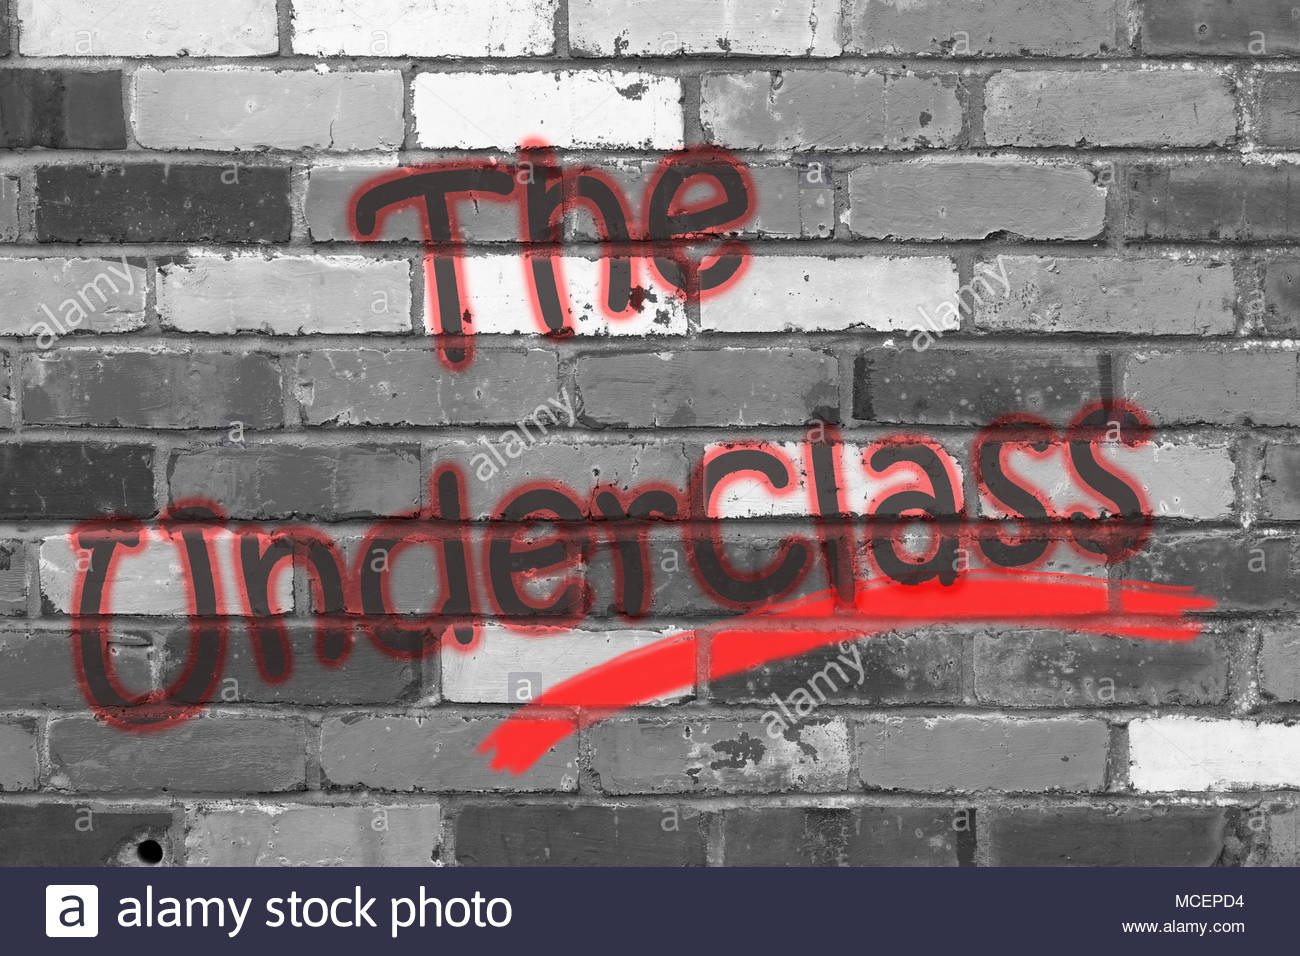 Looking at a black and white brickwall with the wording The Underclass. Dorset, England - Stock Image